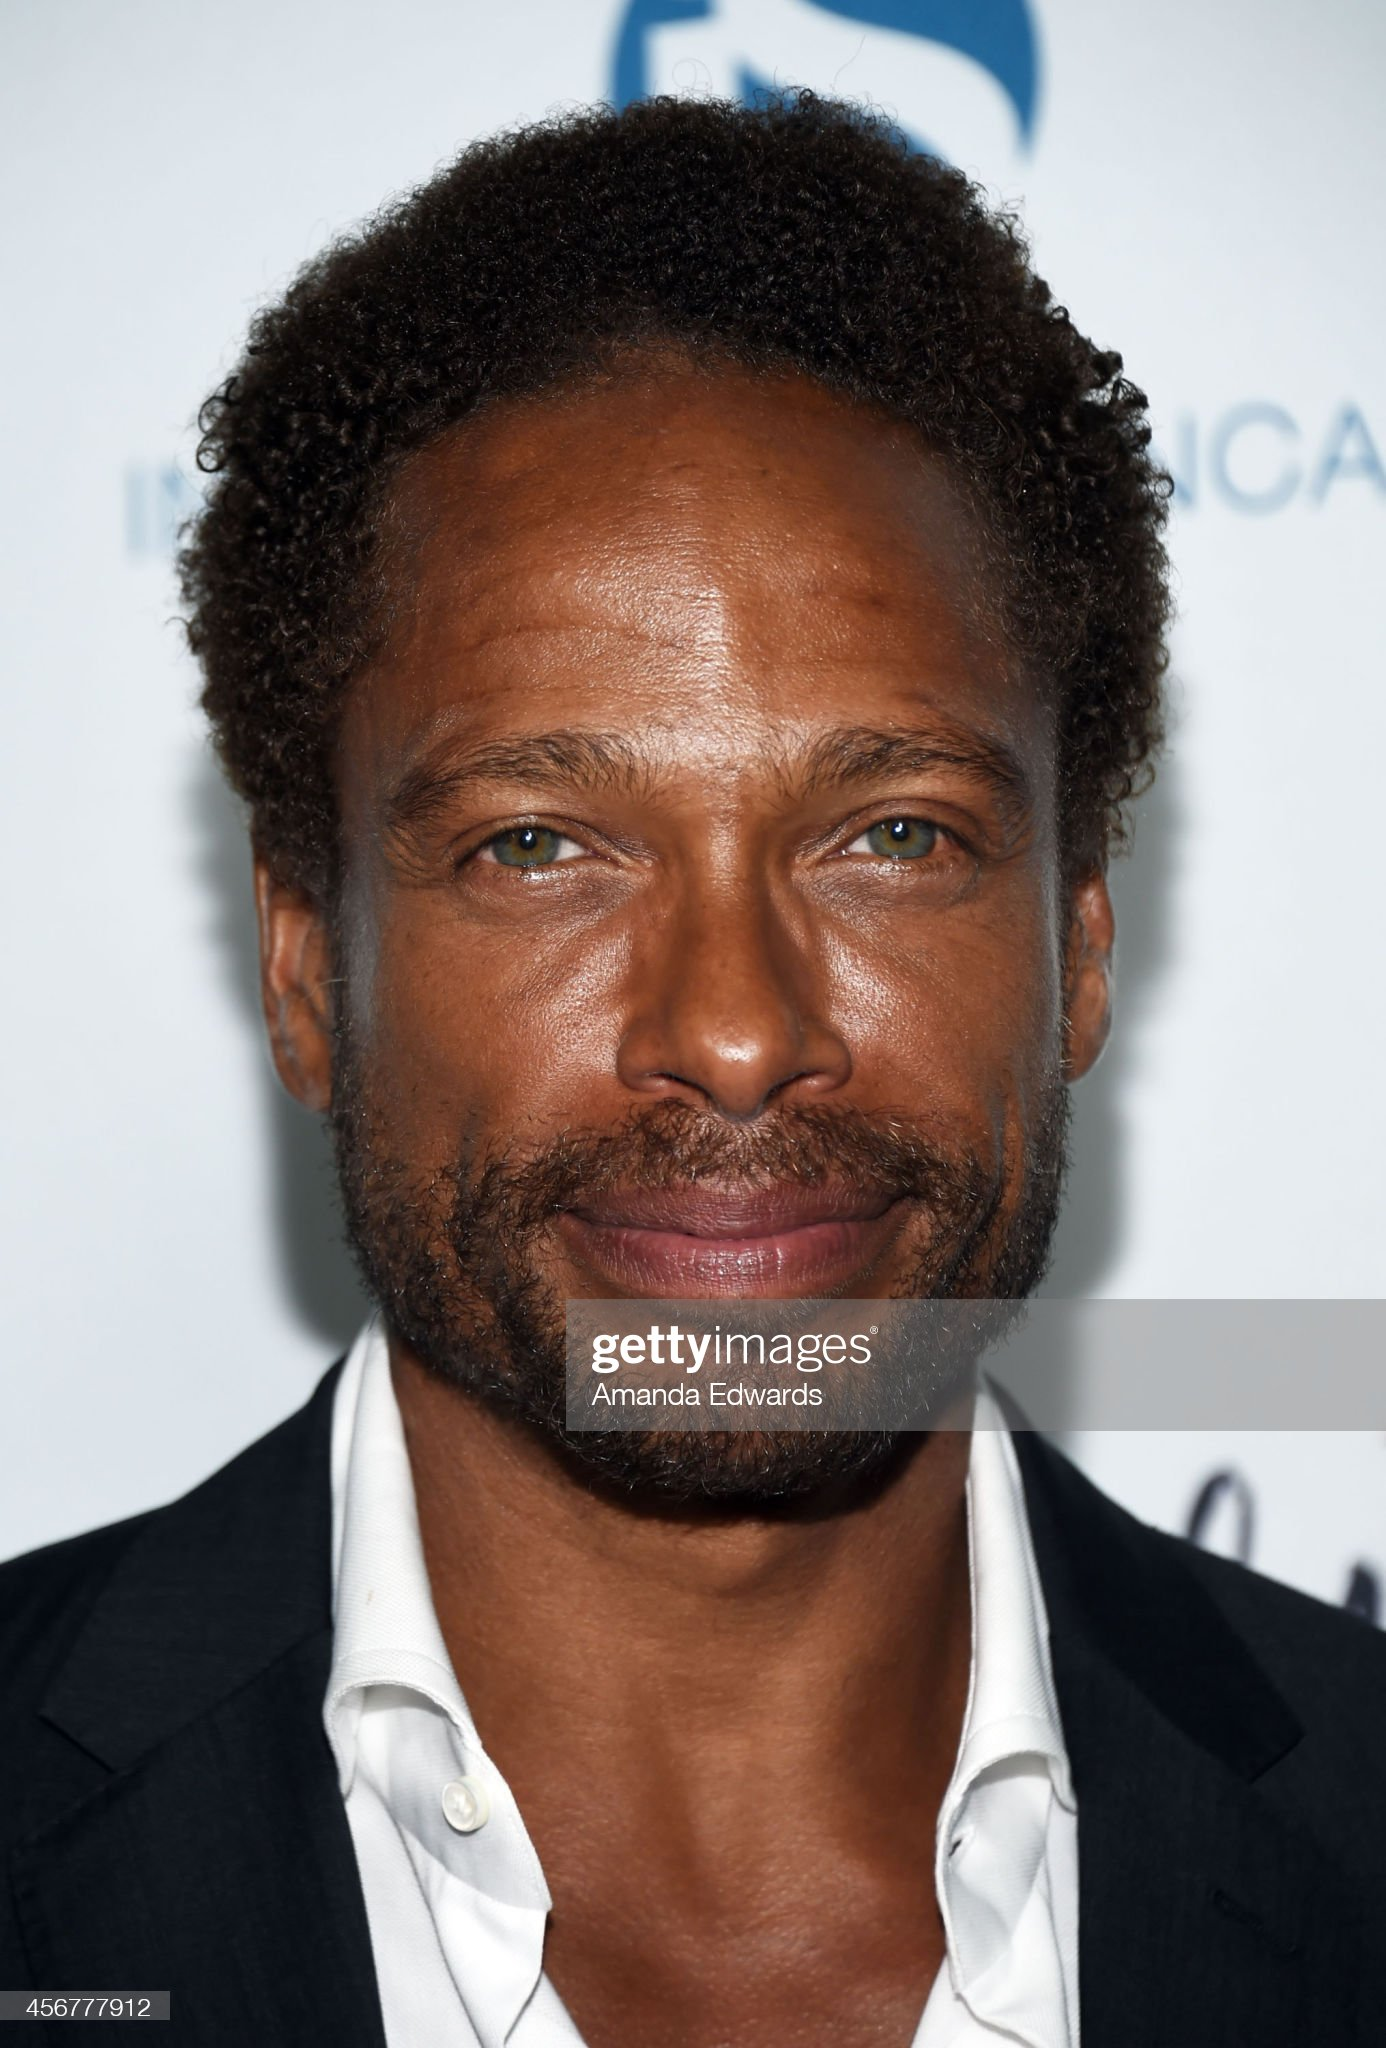 COLOR DE OJOS (clasificación y debate de personas famosas) - Página 11 Actor-gary-dourdan-arrives-at-the-les-girls-14-cabaret-benefit-at-on-picture-id456777912?s=2048x2048